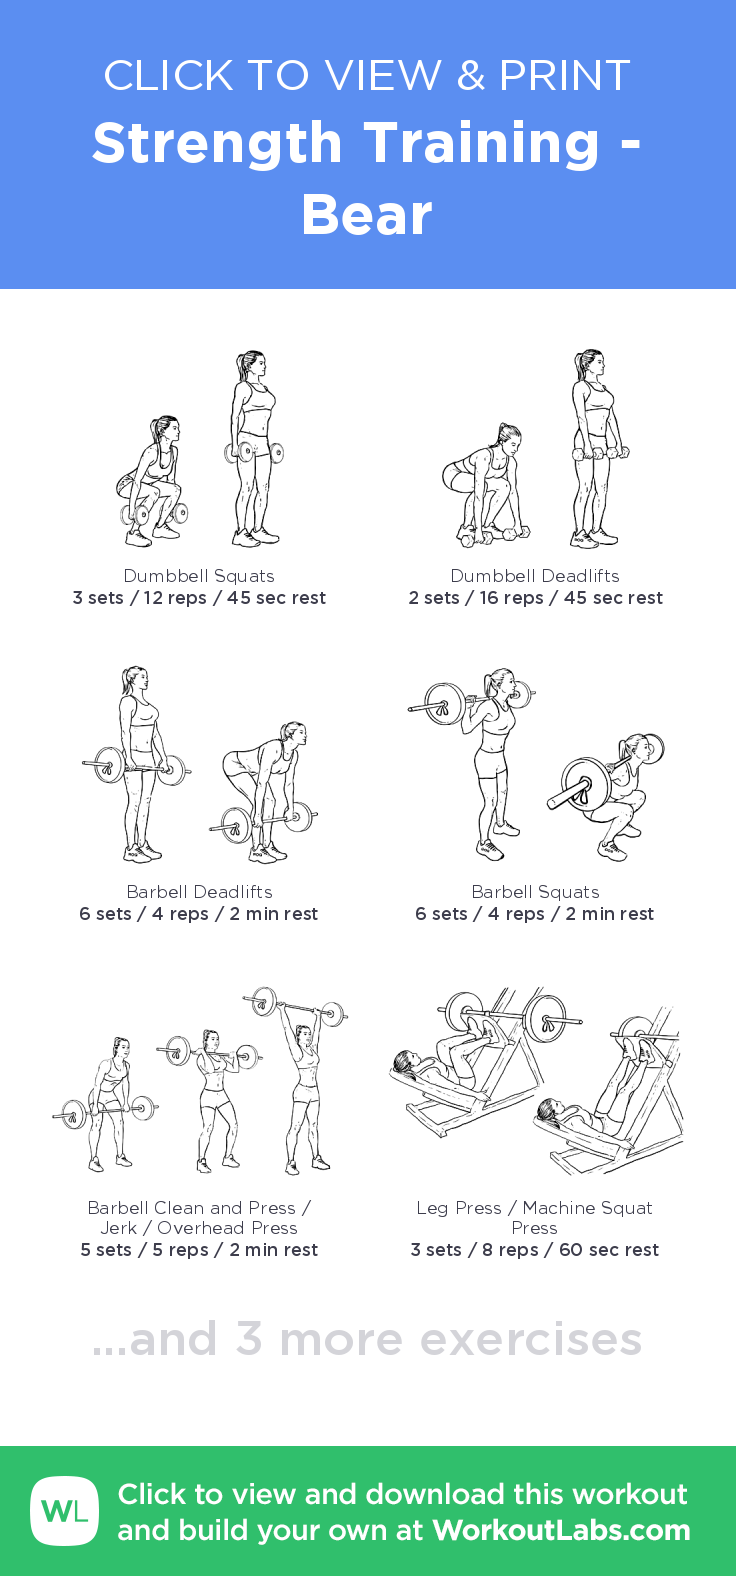 Strength Training Bear click to view and print this